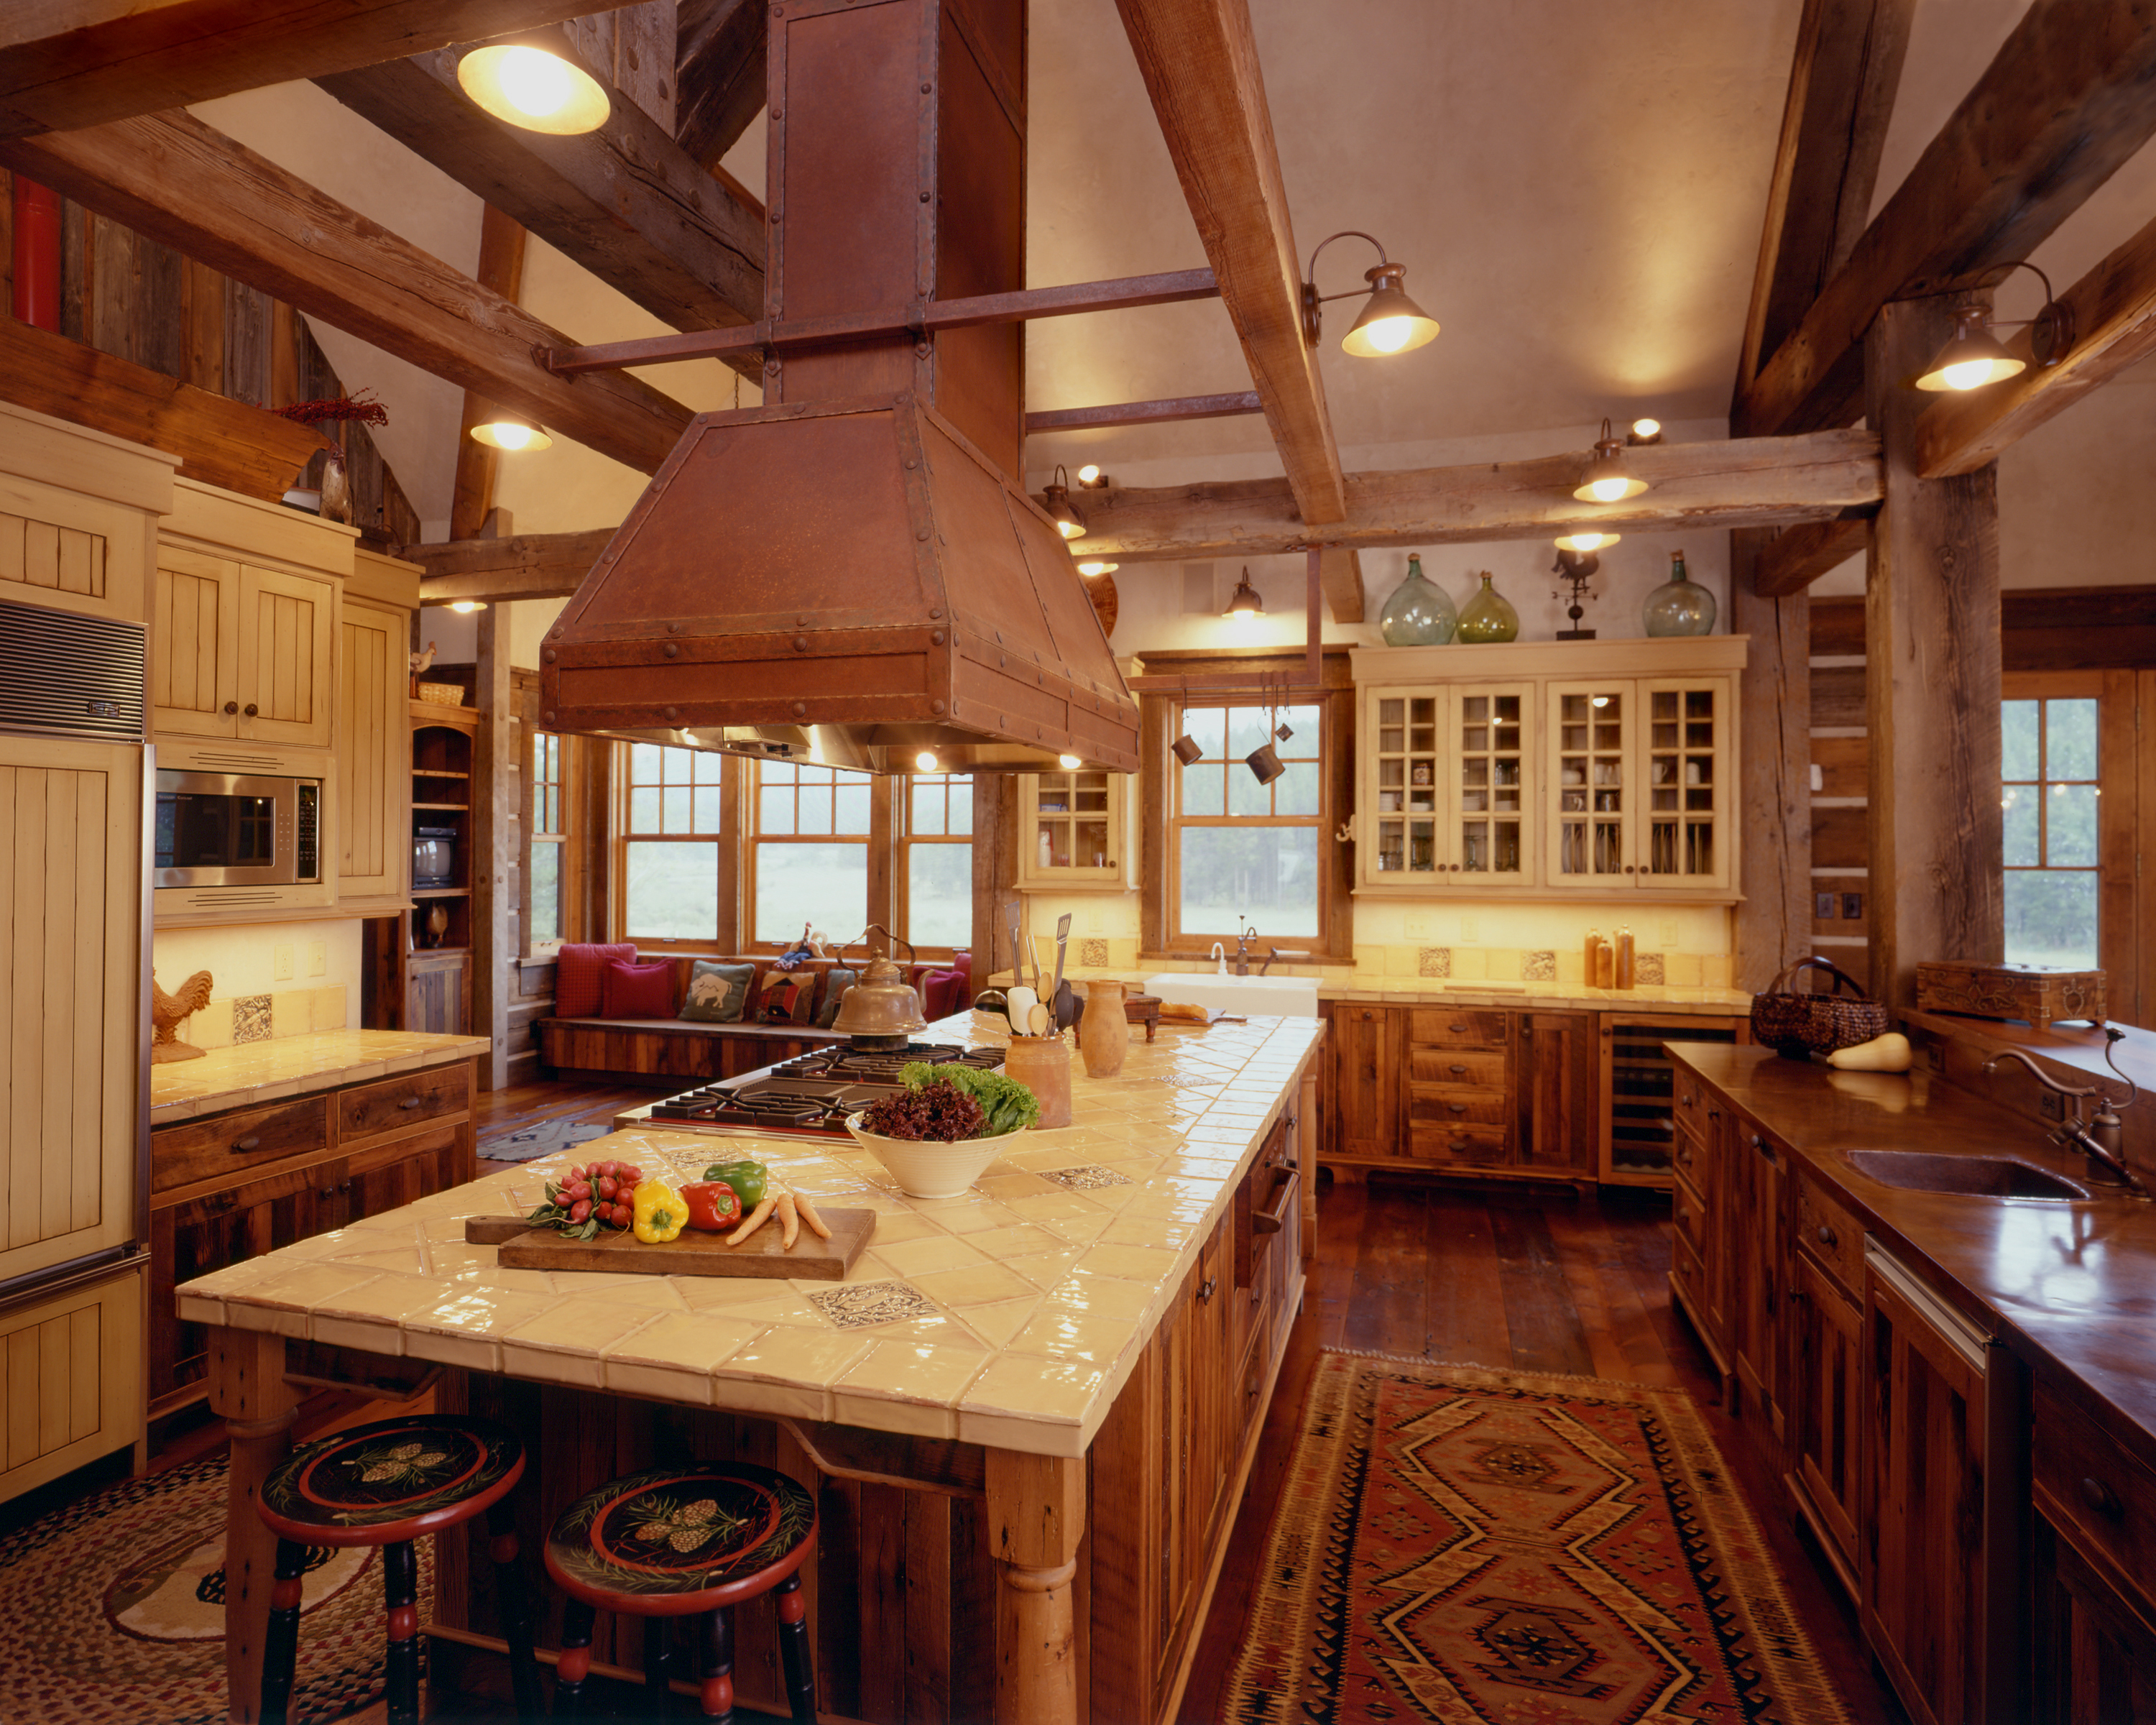 Country Kitchen Decorating Ideas Endearing